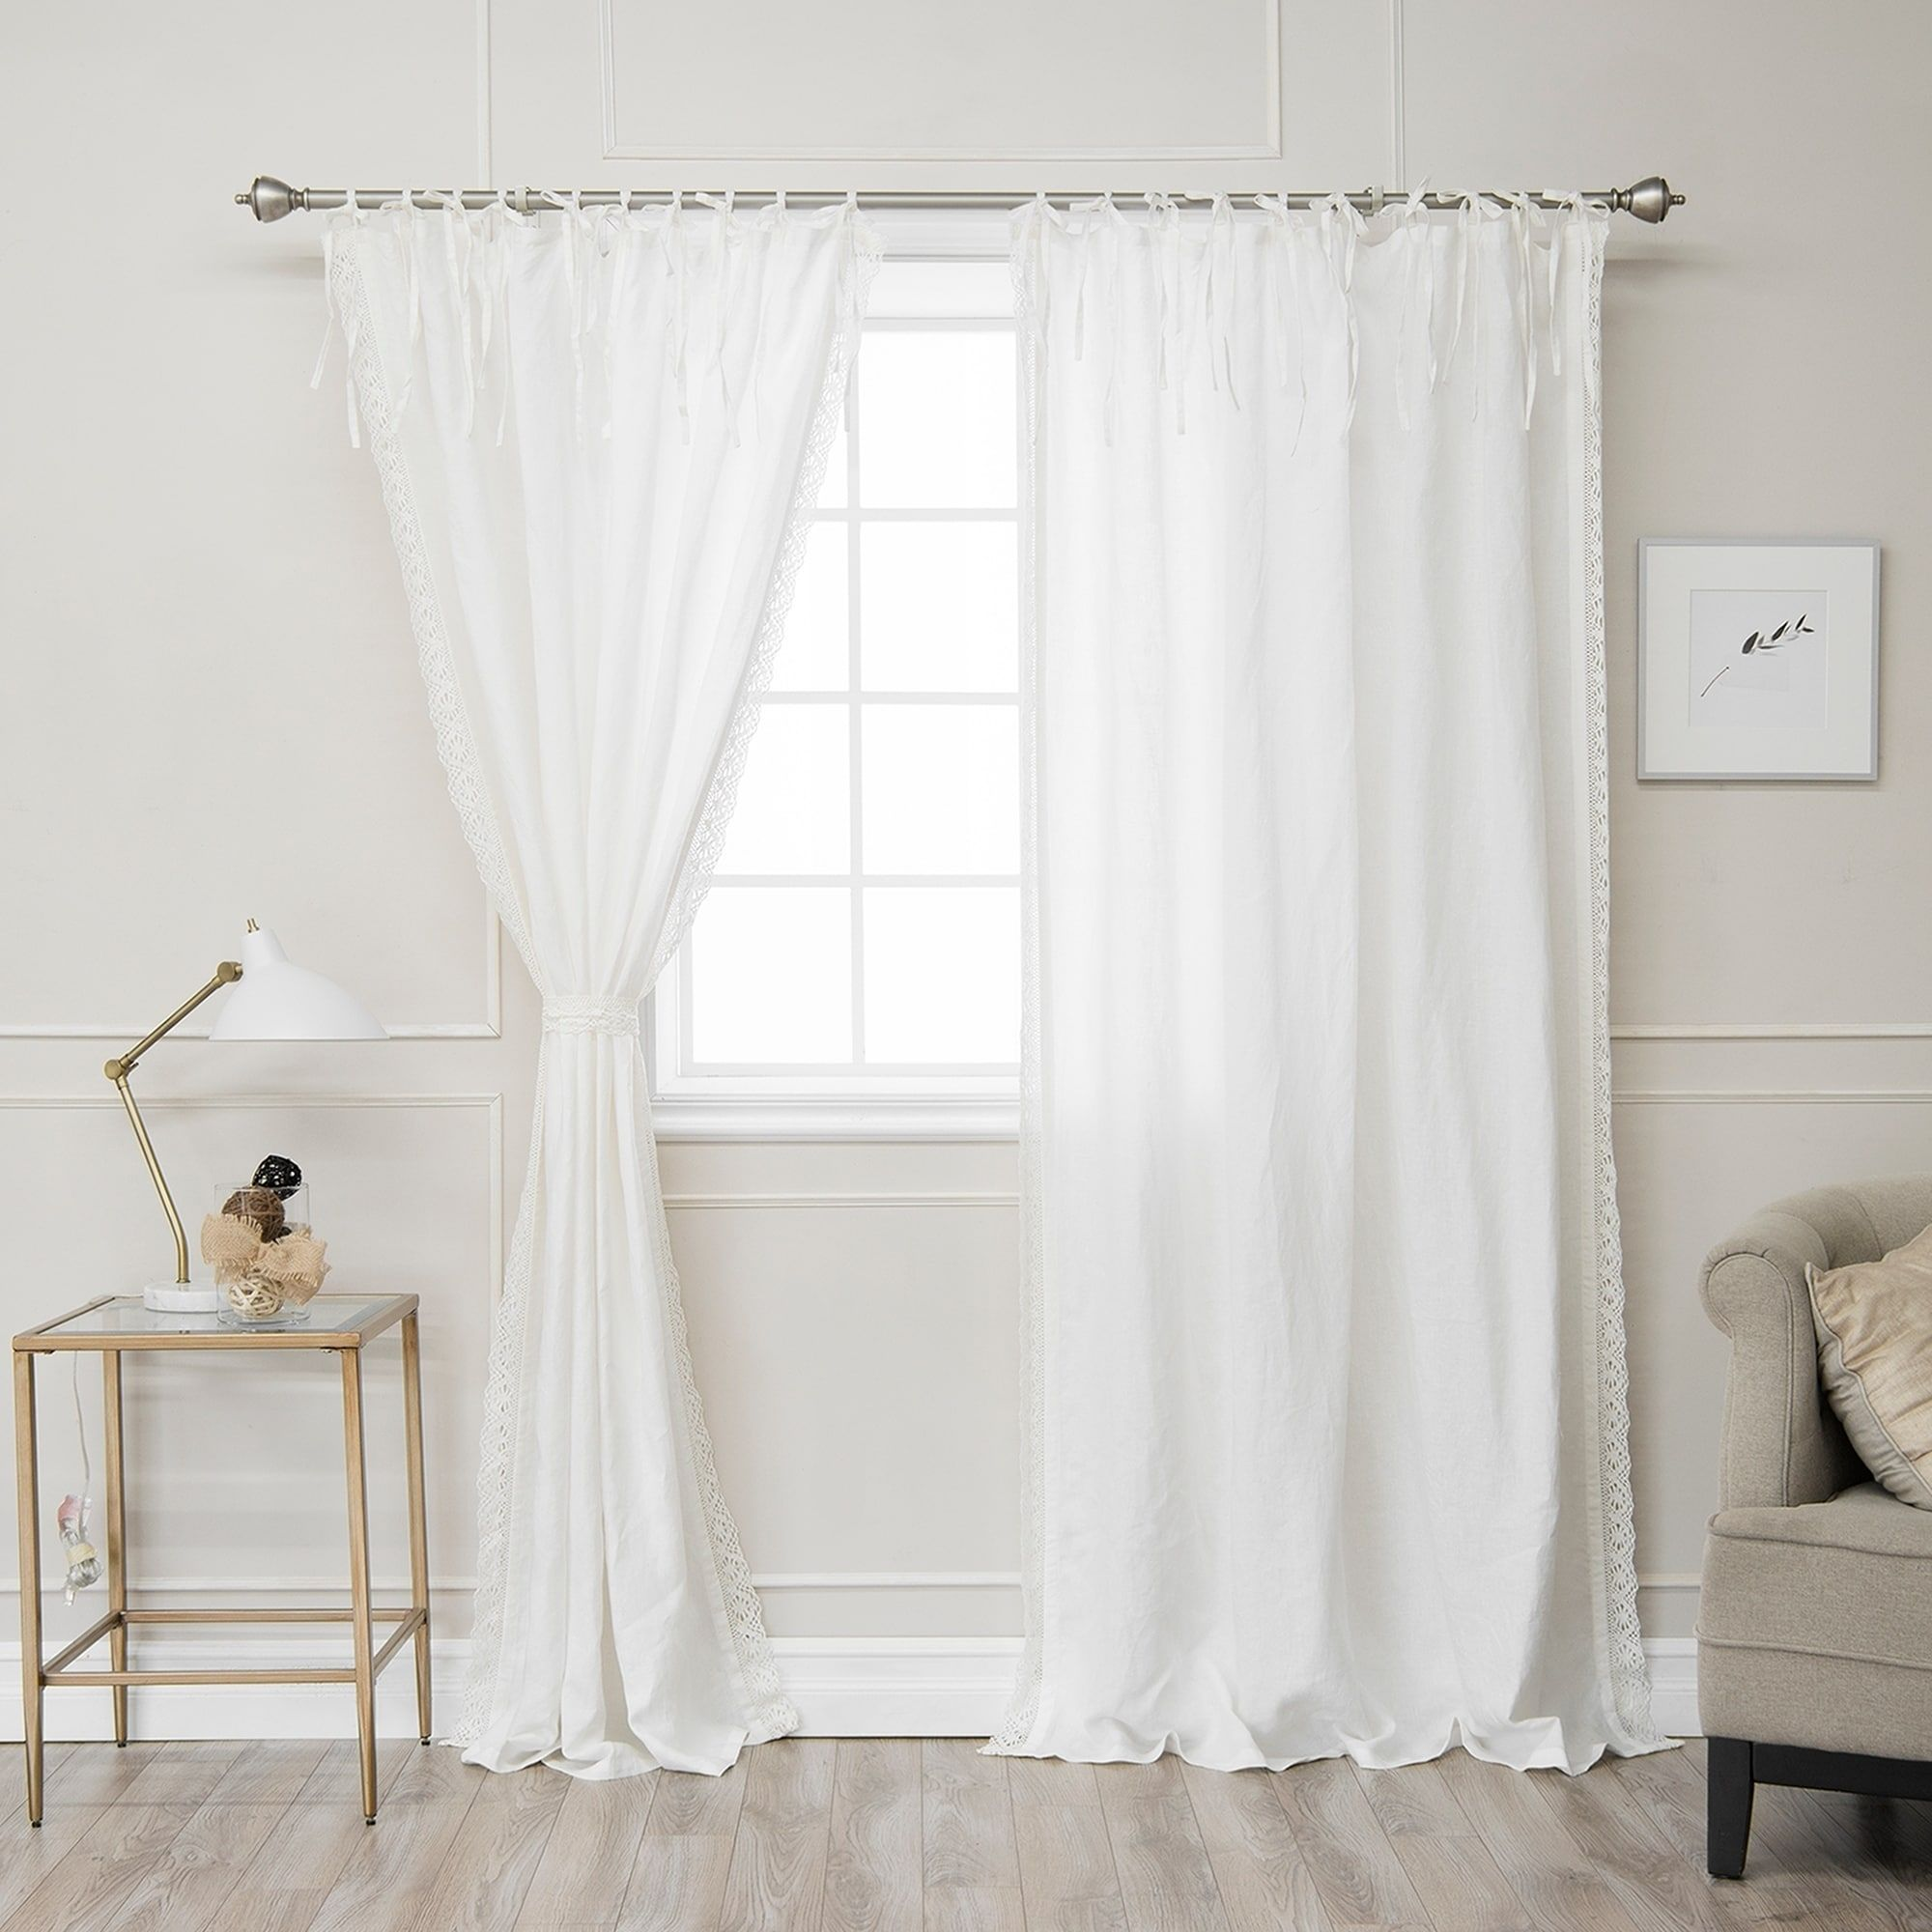 Online Shopping - Bedding, Furniture, Electronics, Jewelry, Clothing & more | Tie top curtains ...